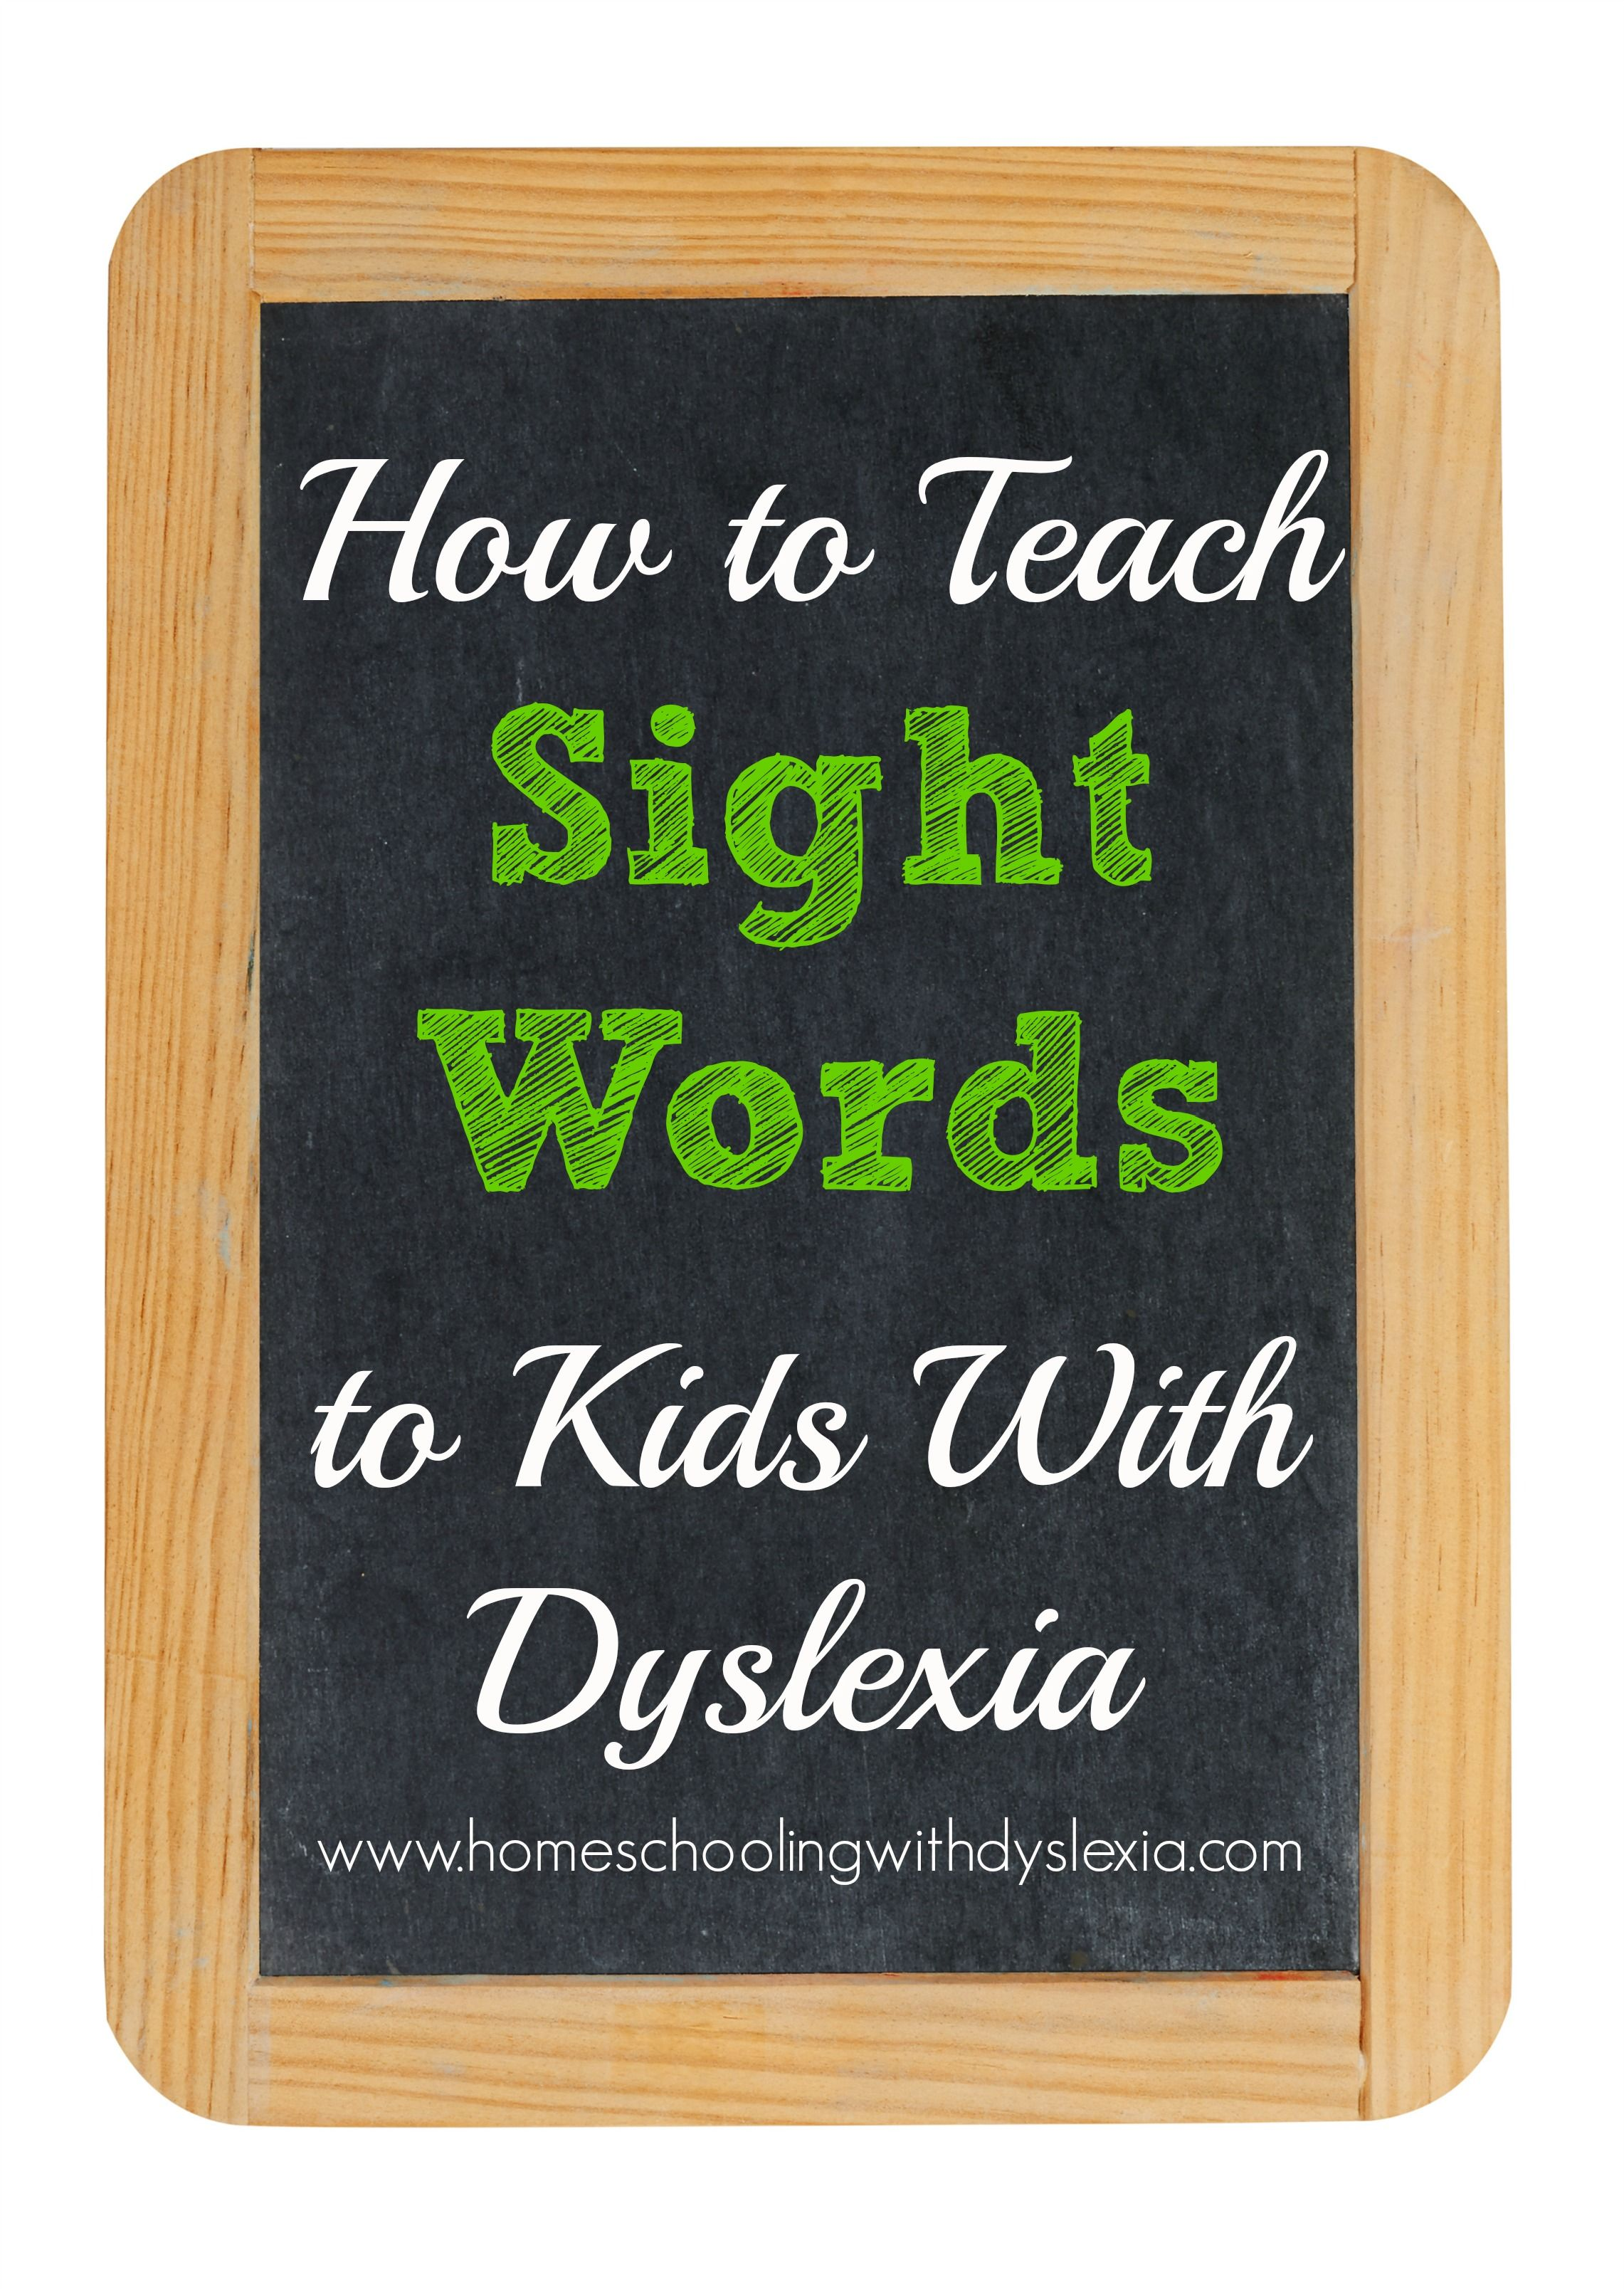 Once I Began This Method My Dyslexic Son Not Only Learned